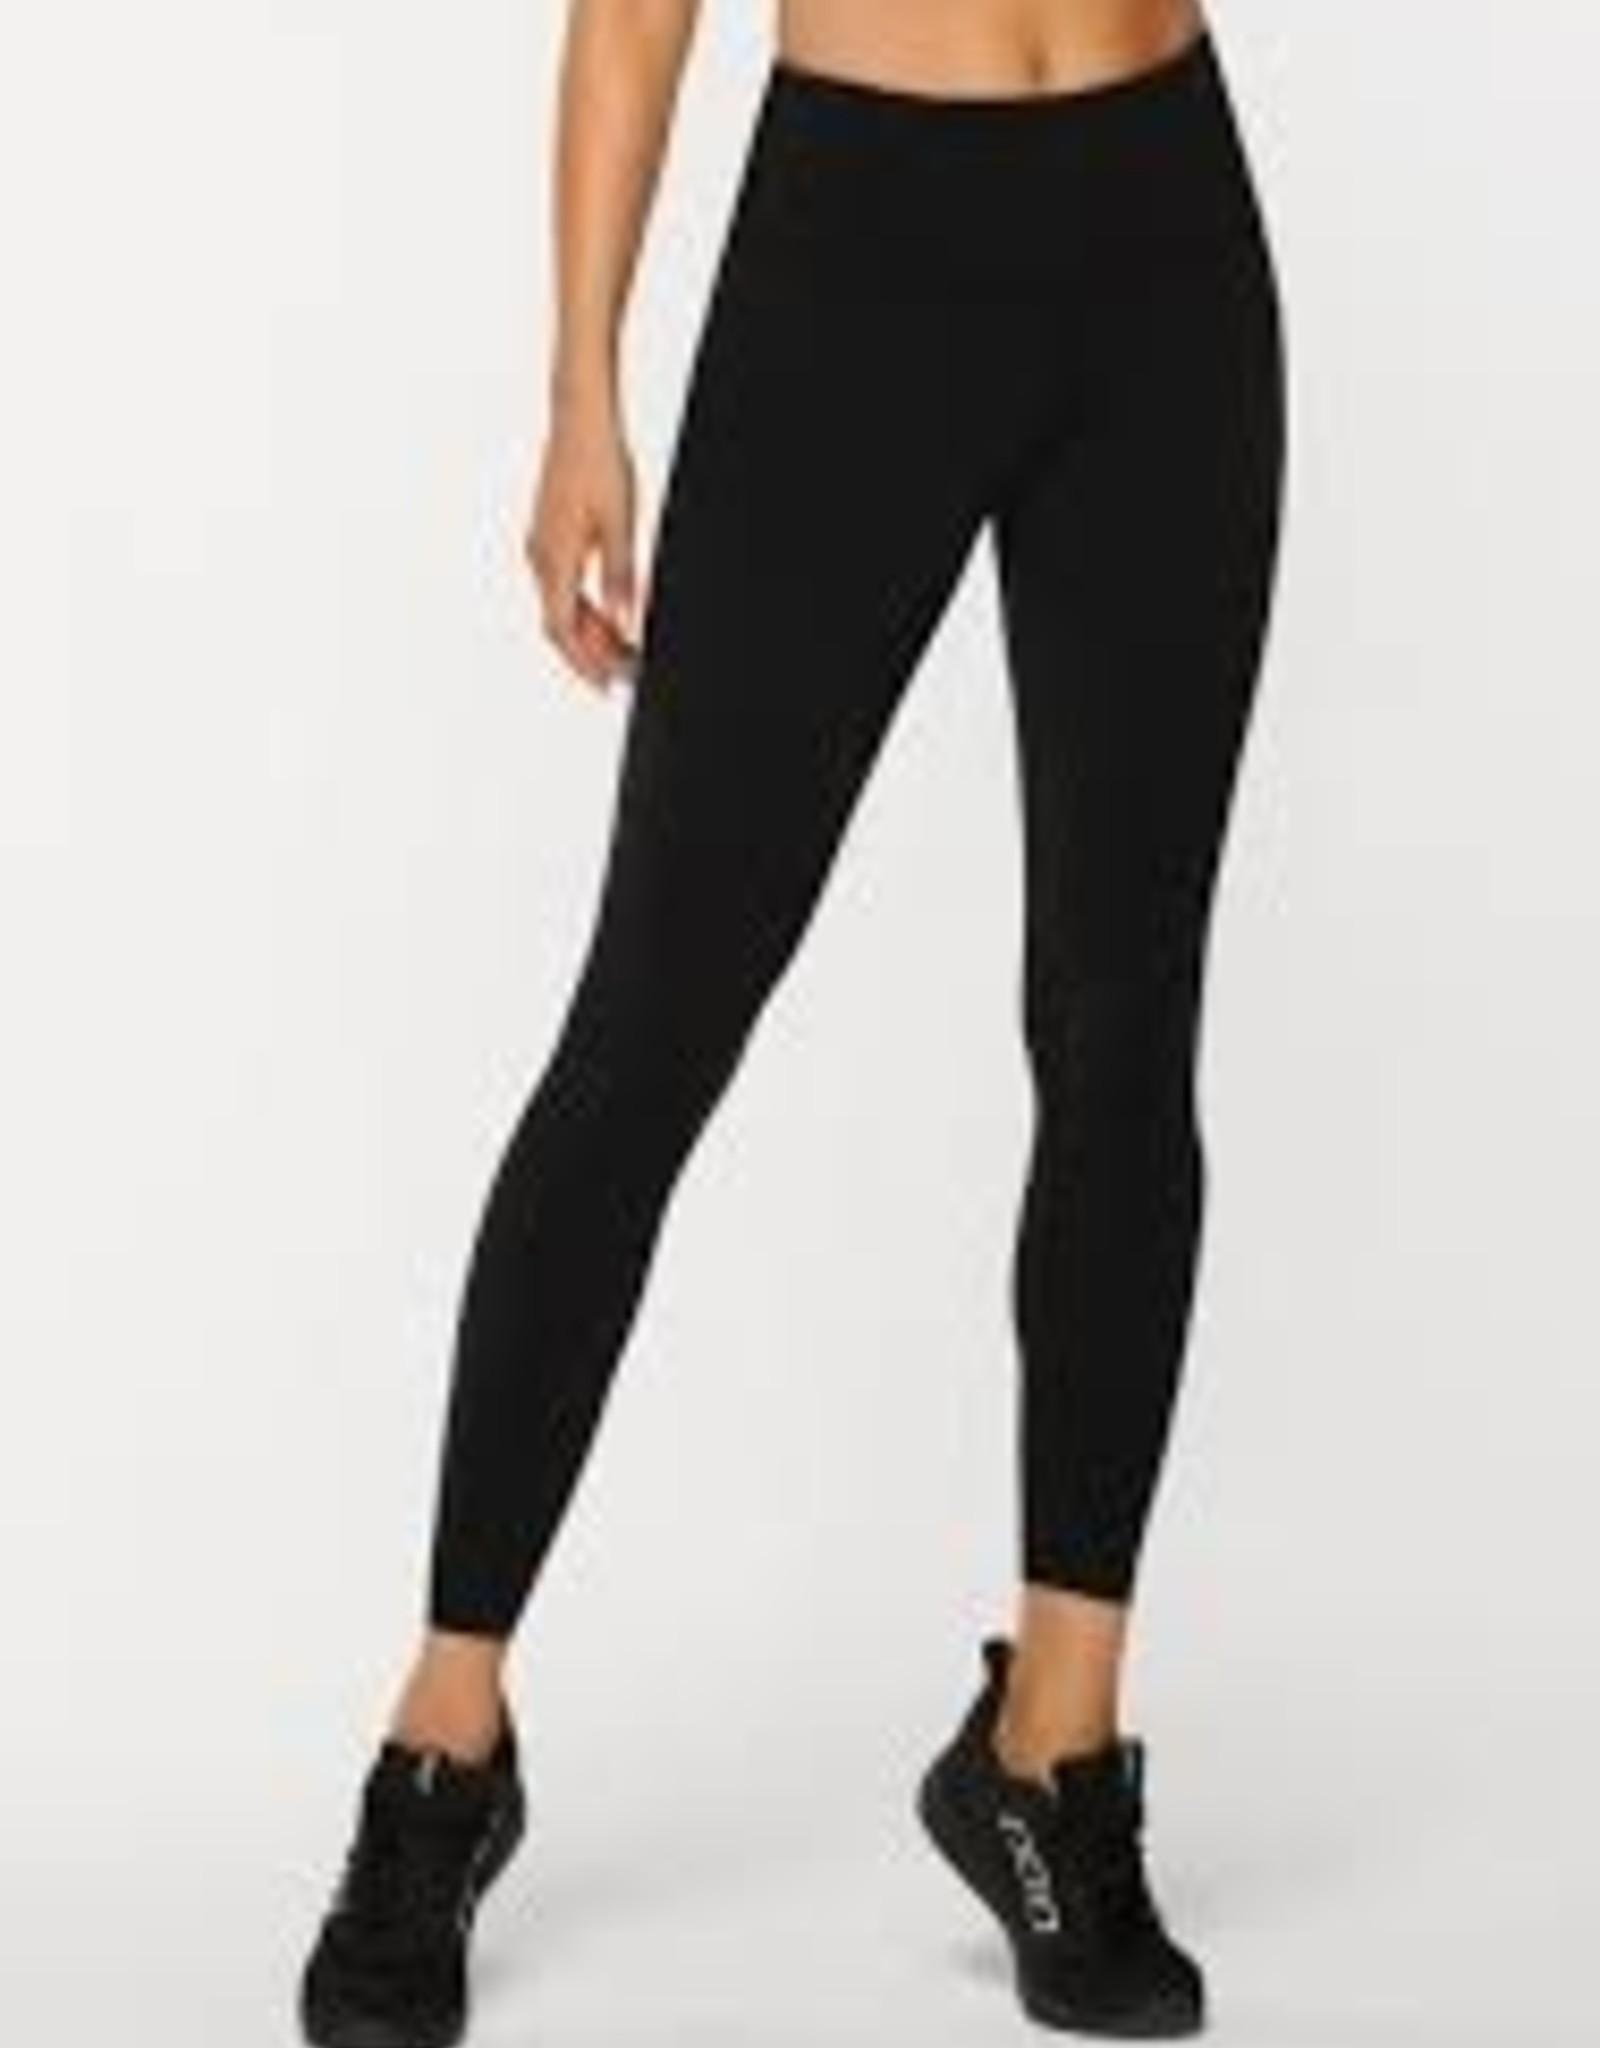 LORNA JANE BLACK ESSENTIAL CORE F/L TIGHT (M)